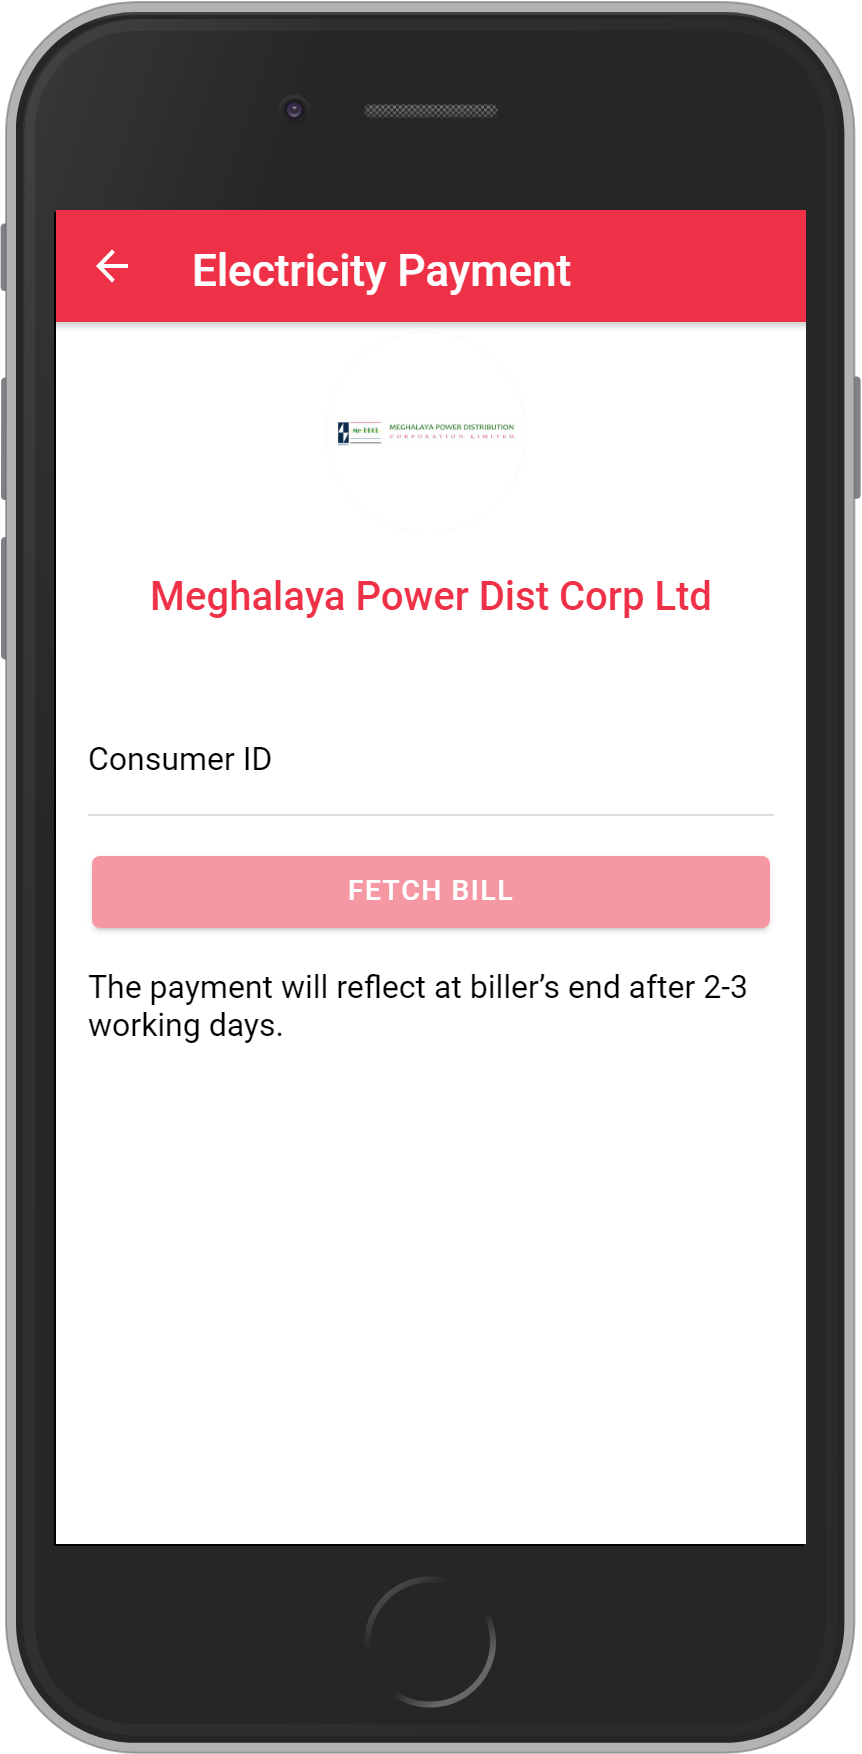 Get UNLIMITED <b>0.1%</b> CASHBACK on Meghalaya Power Dist Corp Ltd Bill Payment.